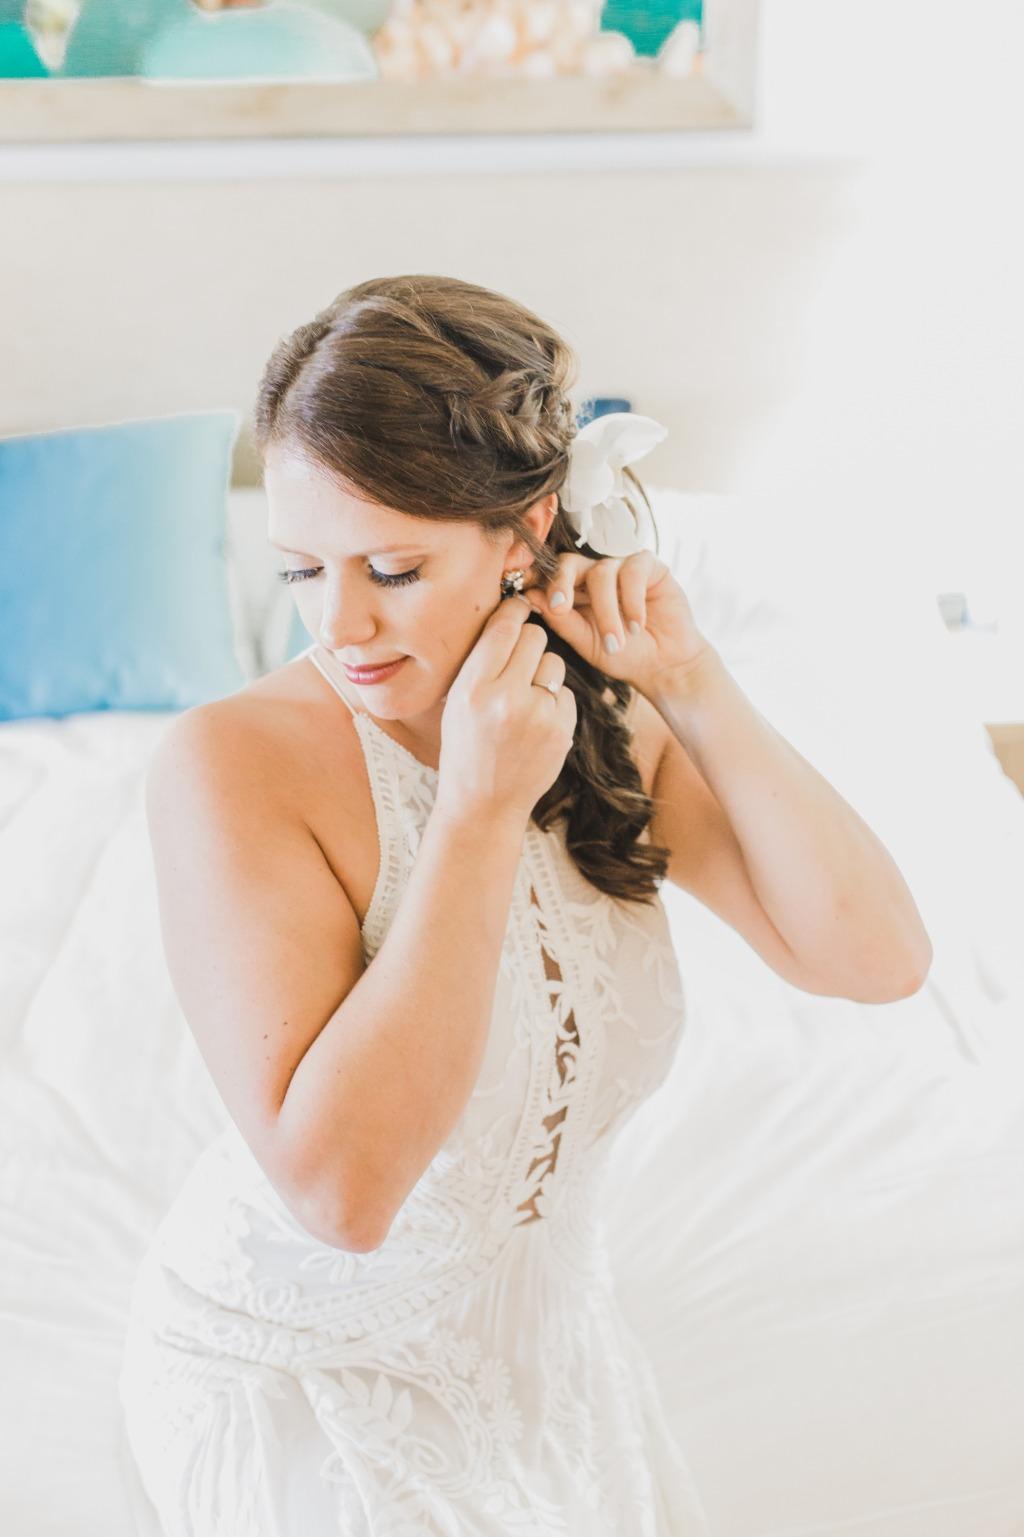 Getting ready shots are such an important part of your wedding day! Don't forget to document them!